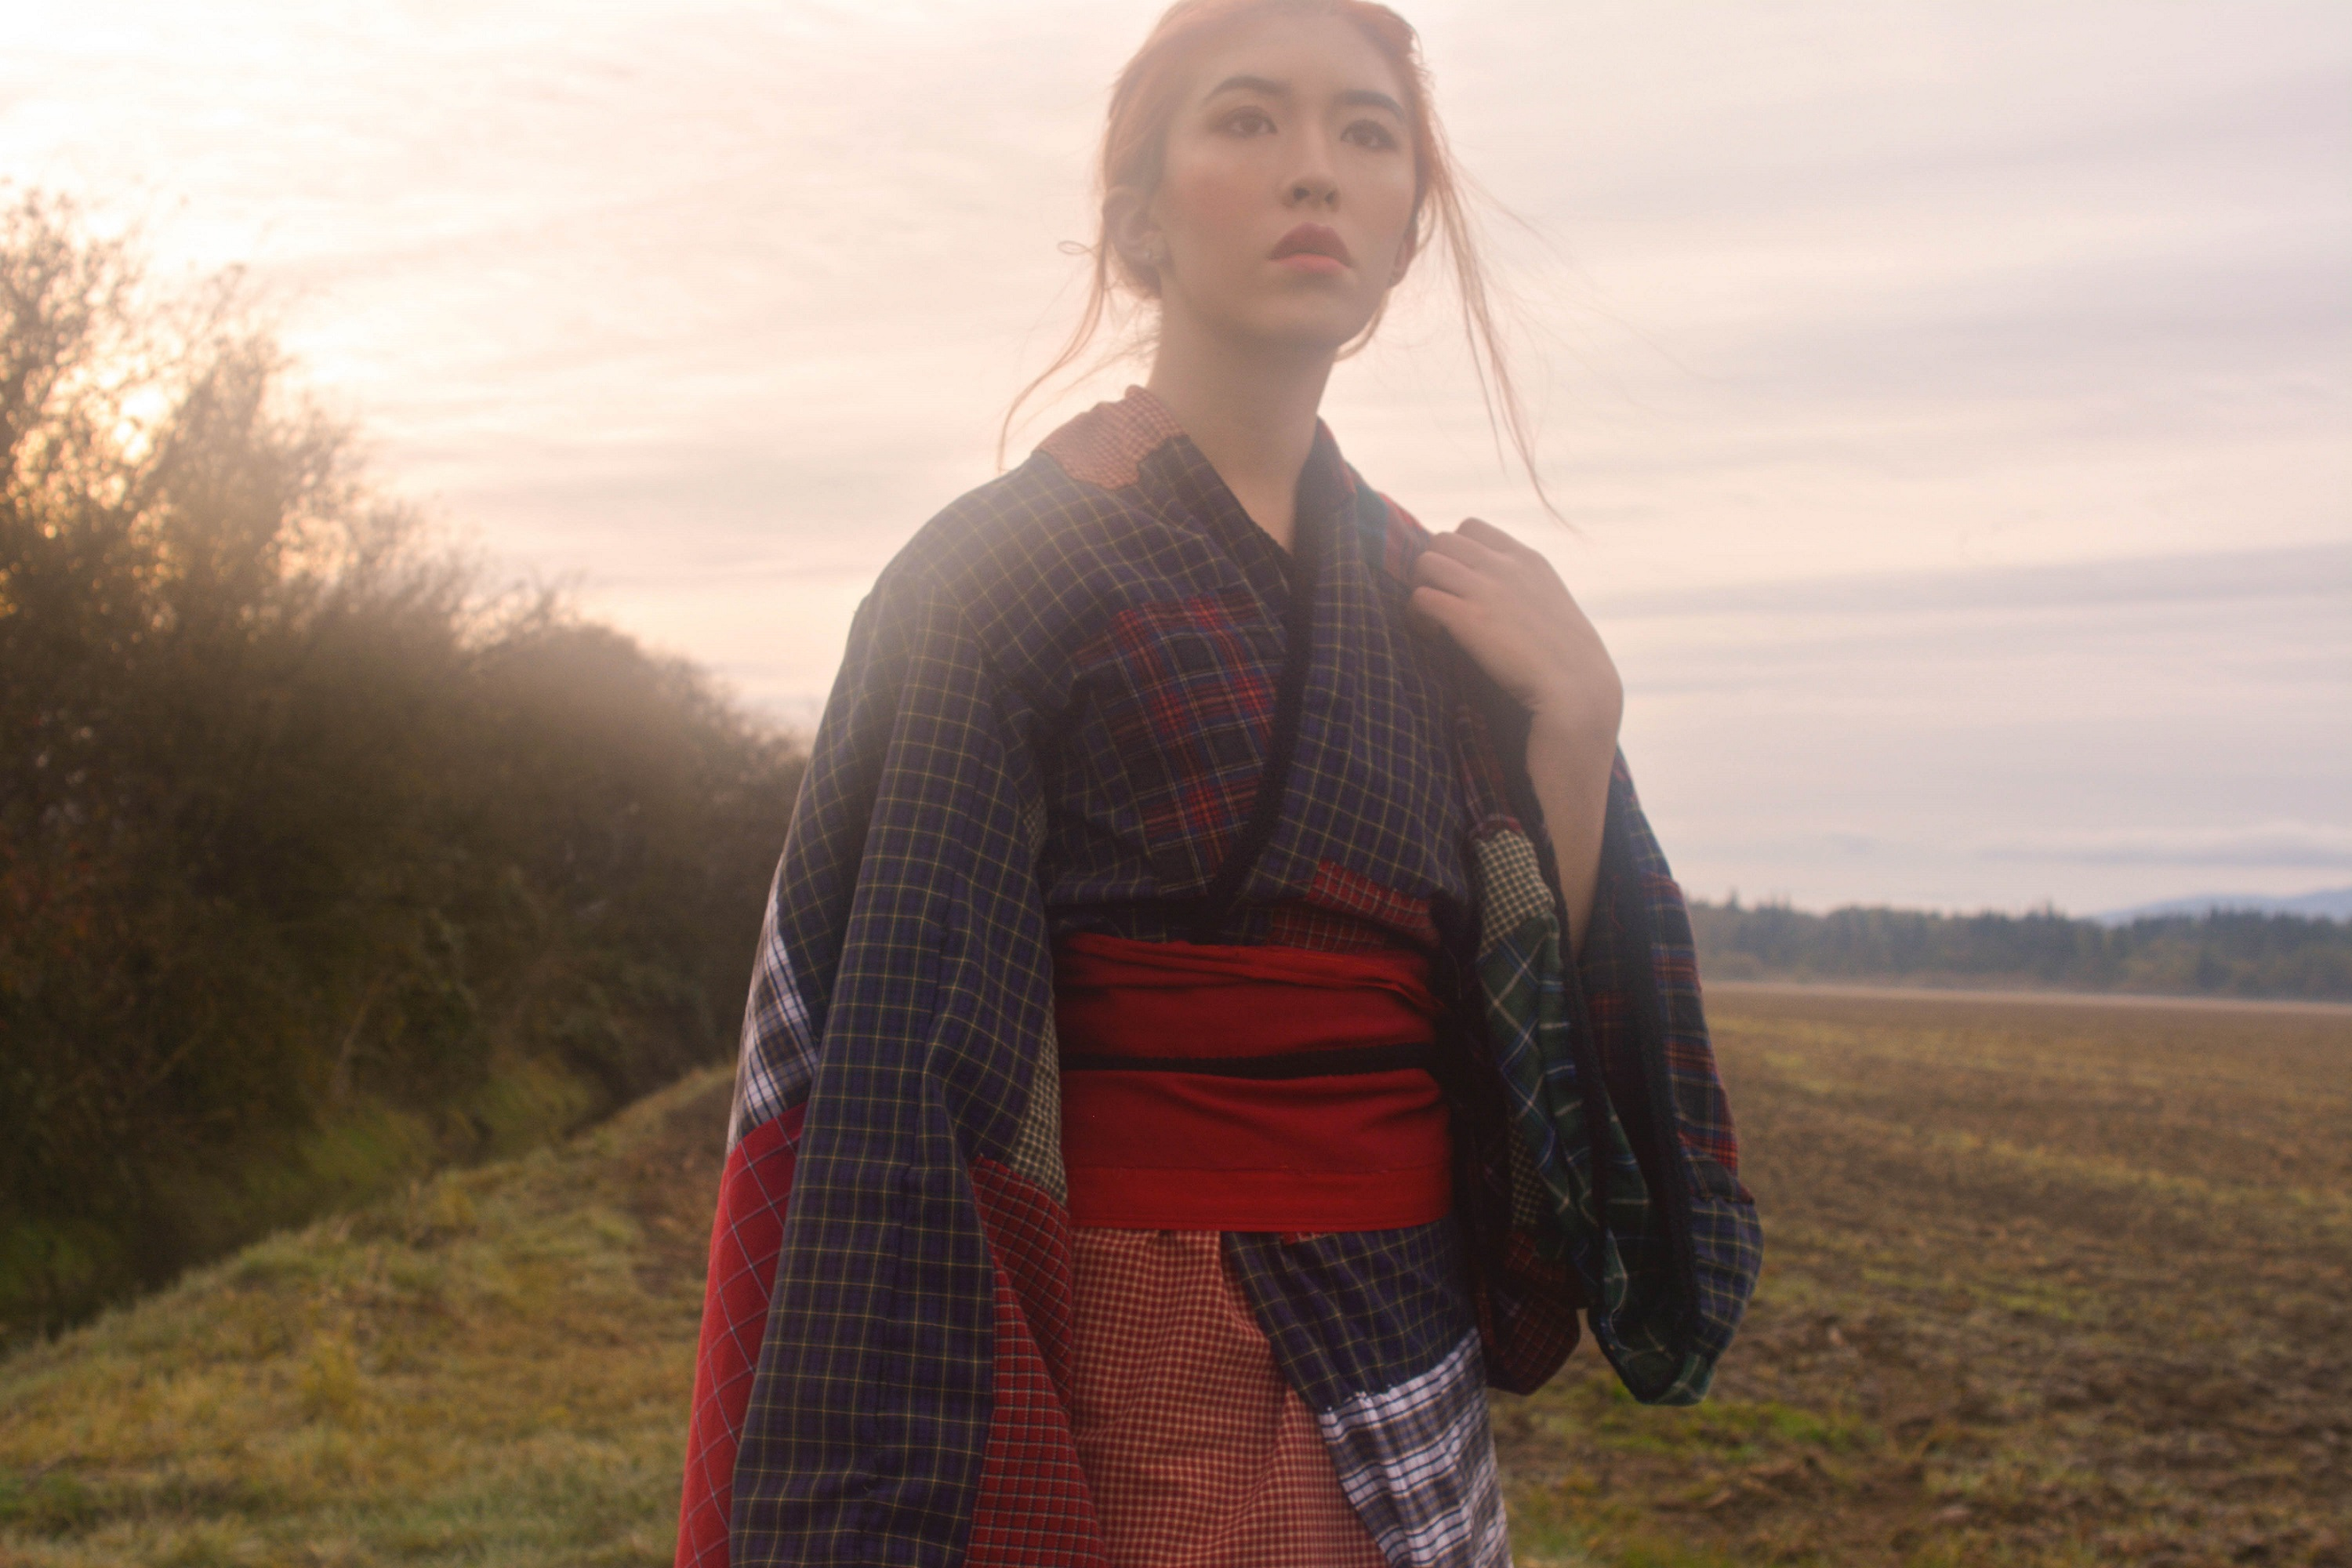 Maya in the kimono looking into the distance